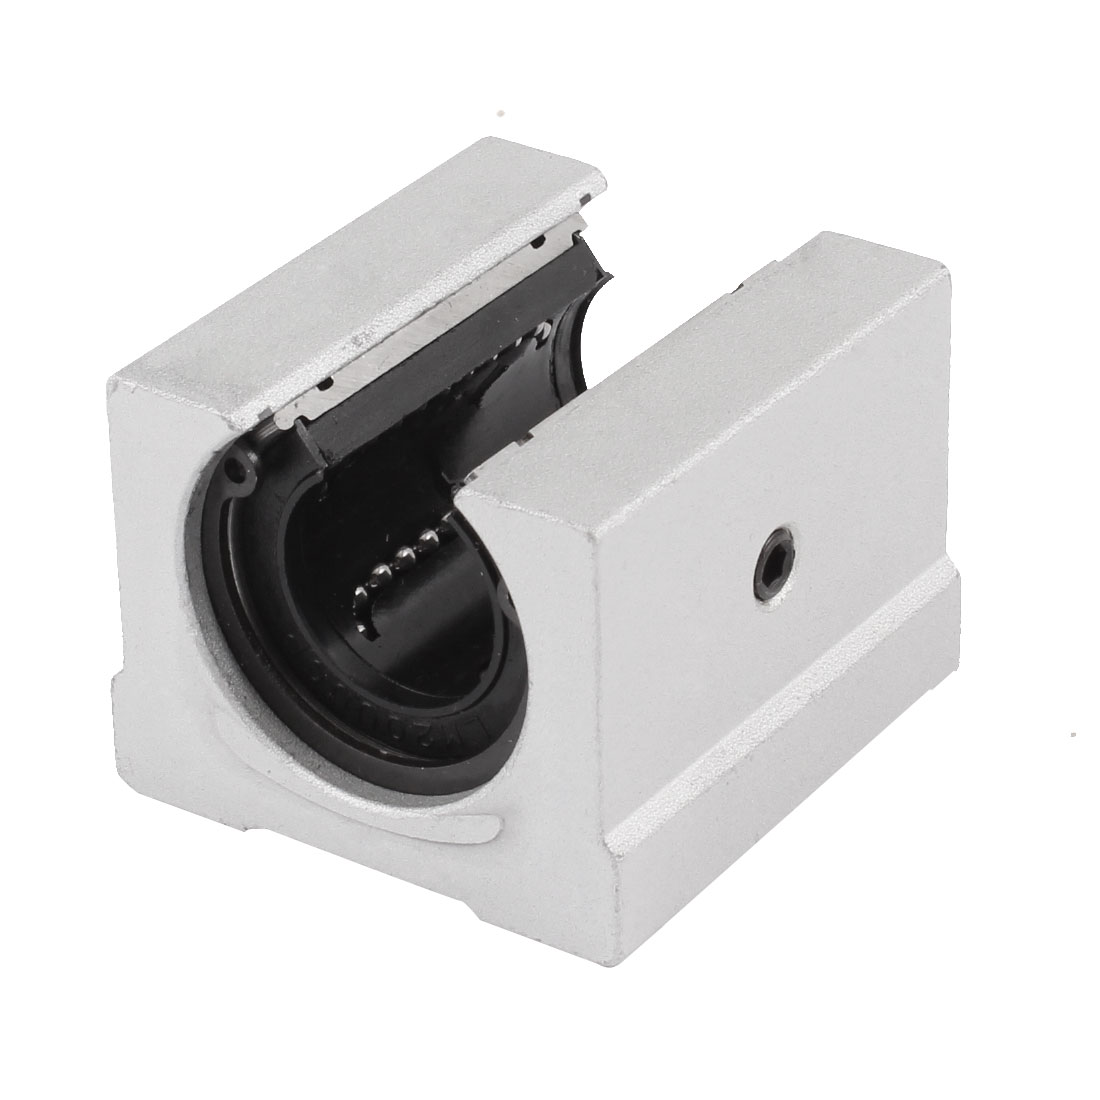 SBR20UU 20mm Open Linear Bearing Slide Linear Motion